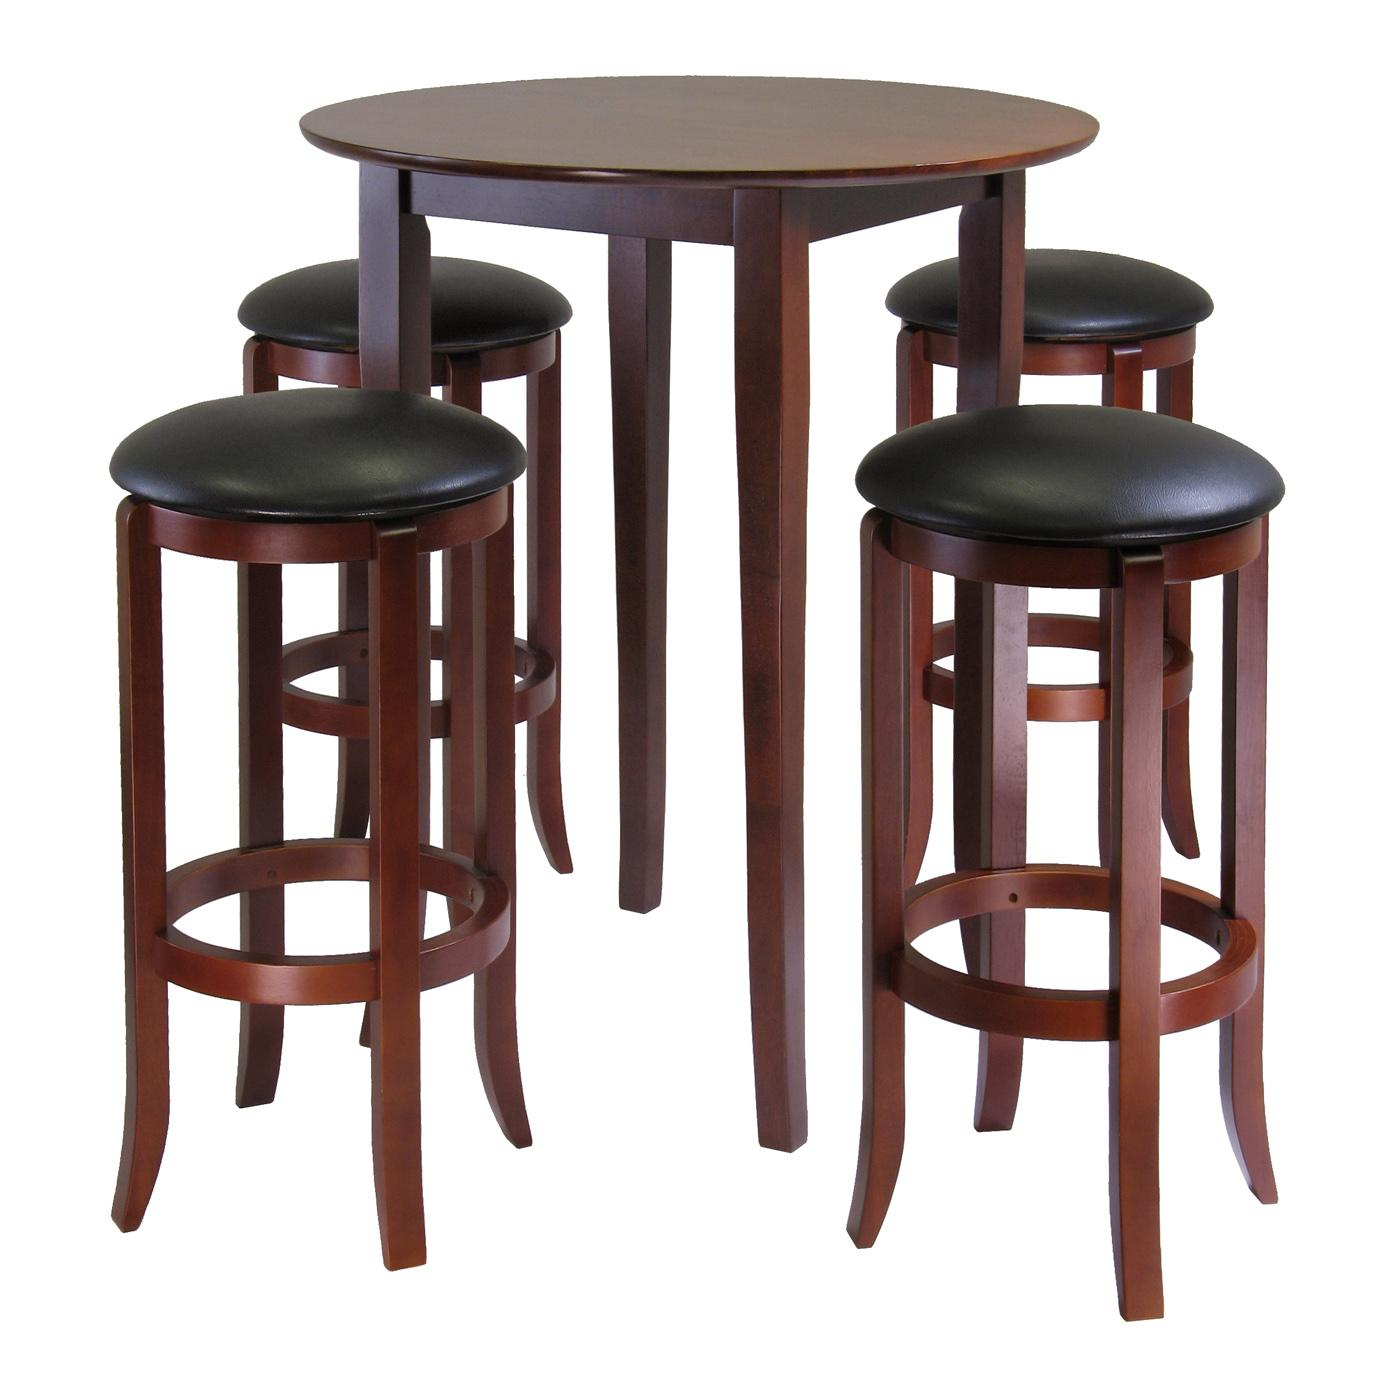 winsome fiona round 5pc high pub table set with pvc stools by oj commerce 94581. Black Bedroom Furniture Sets. Home Design Ideas